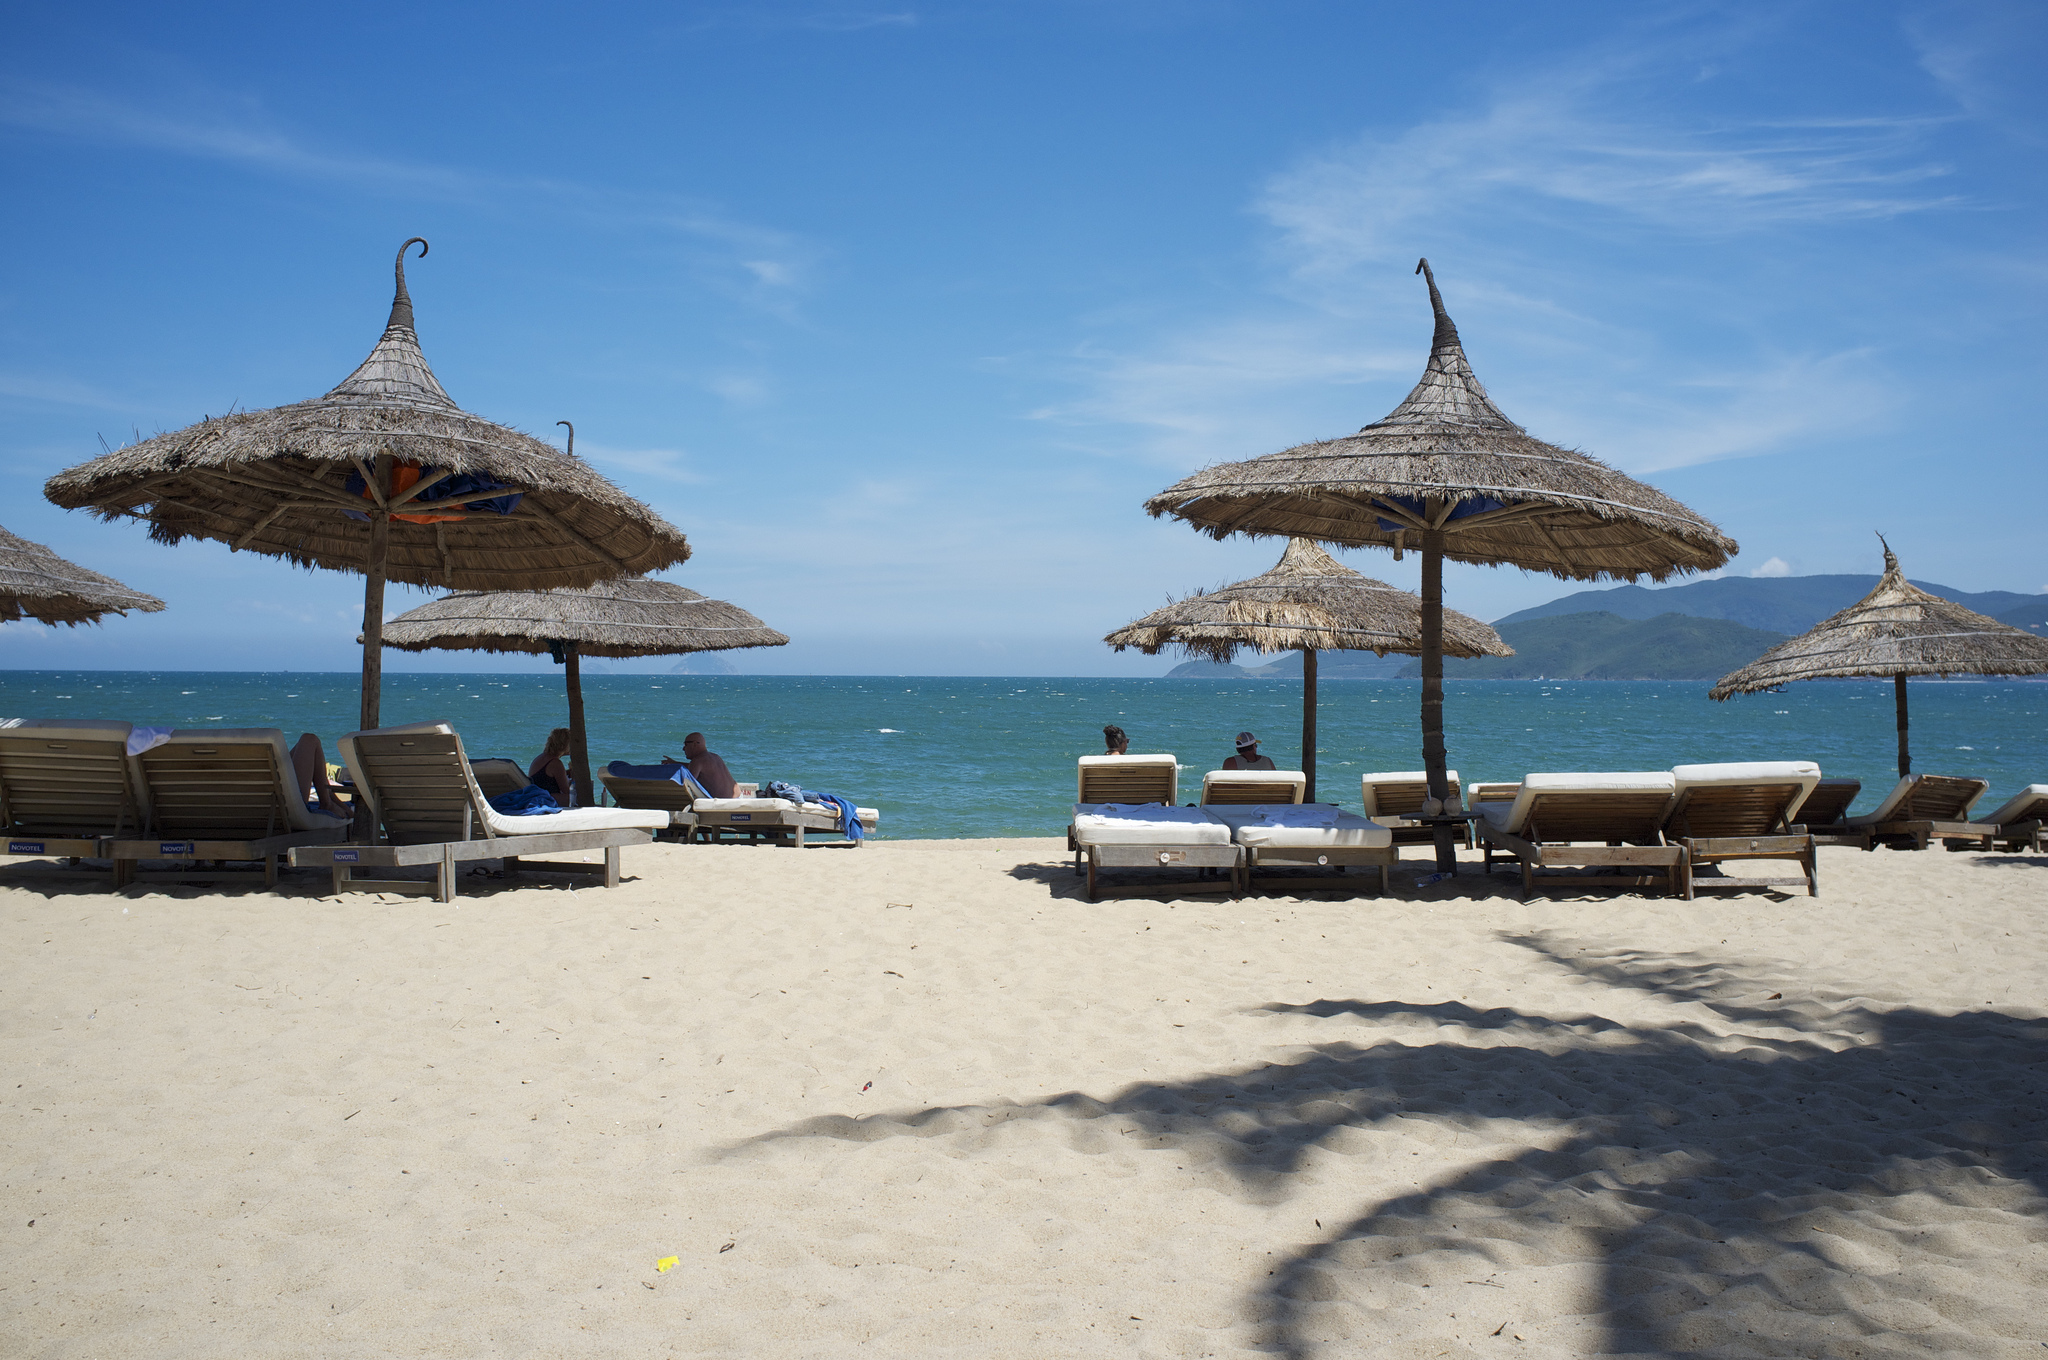 Sunbeds and umbrellas in Nha Trang